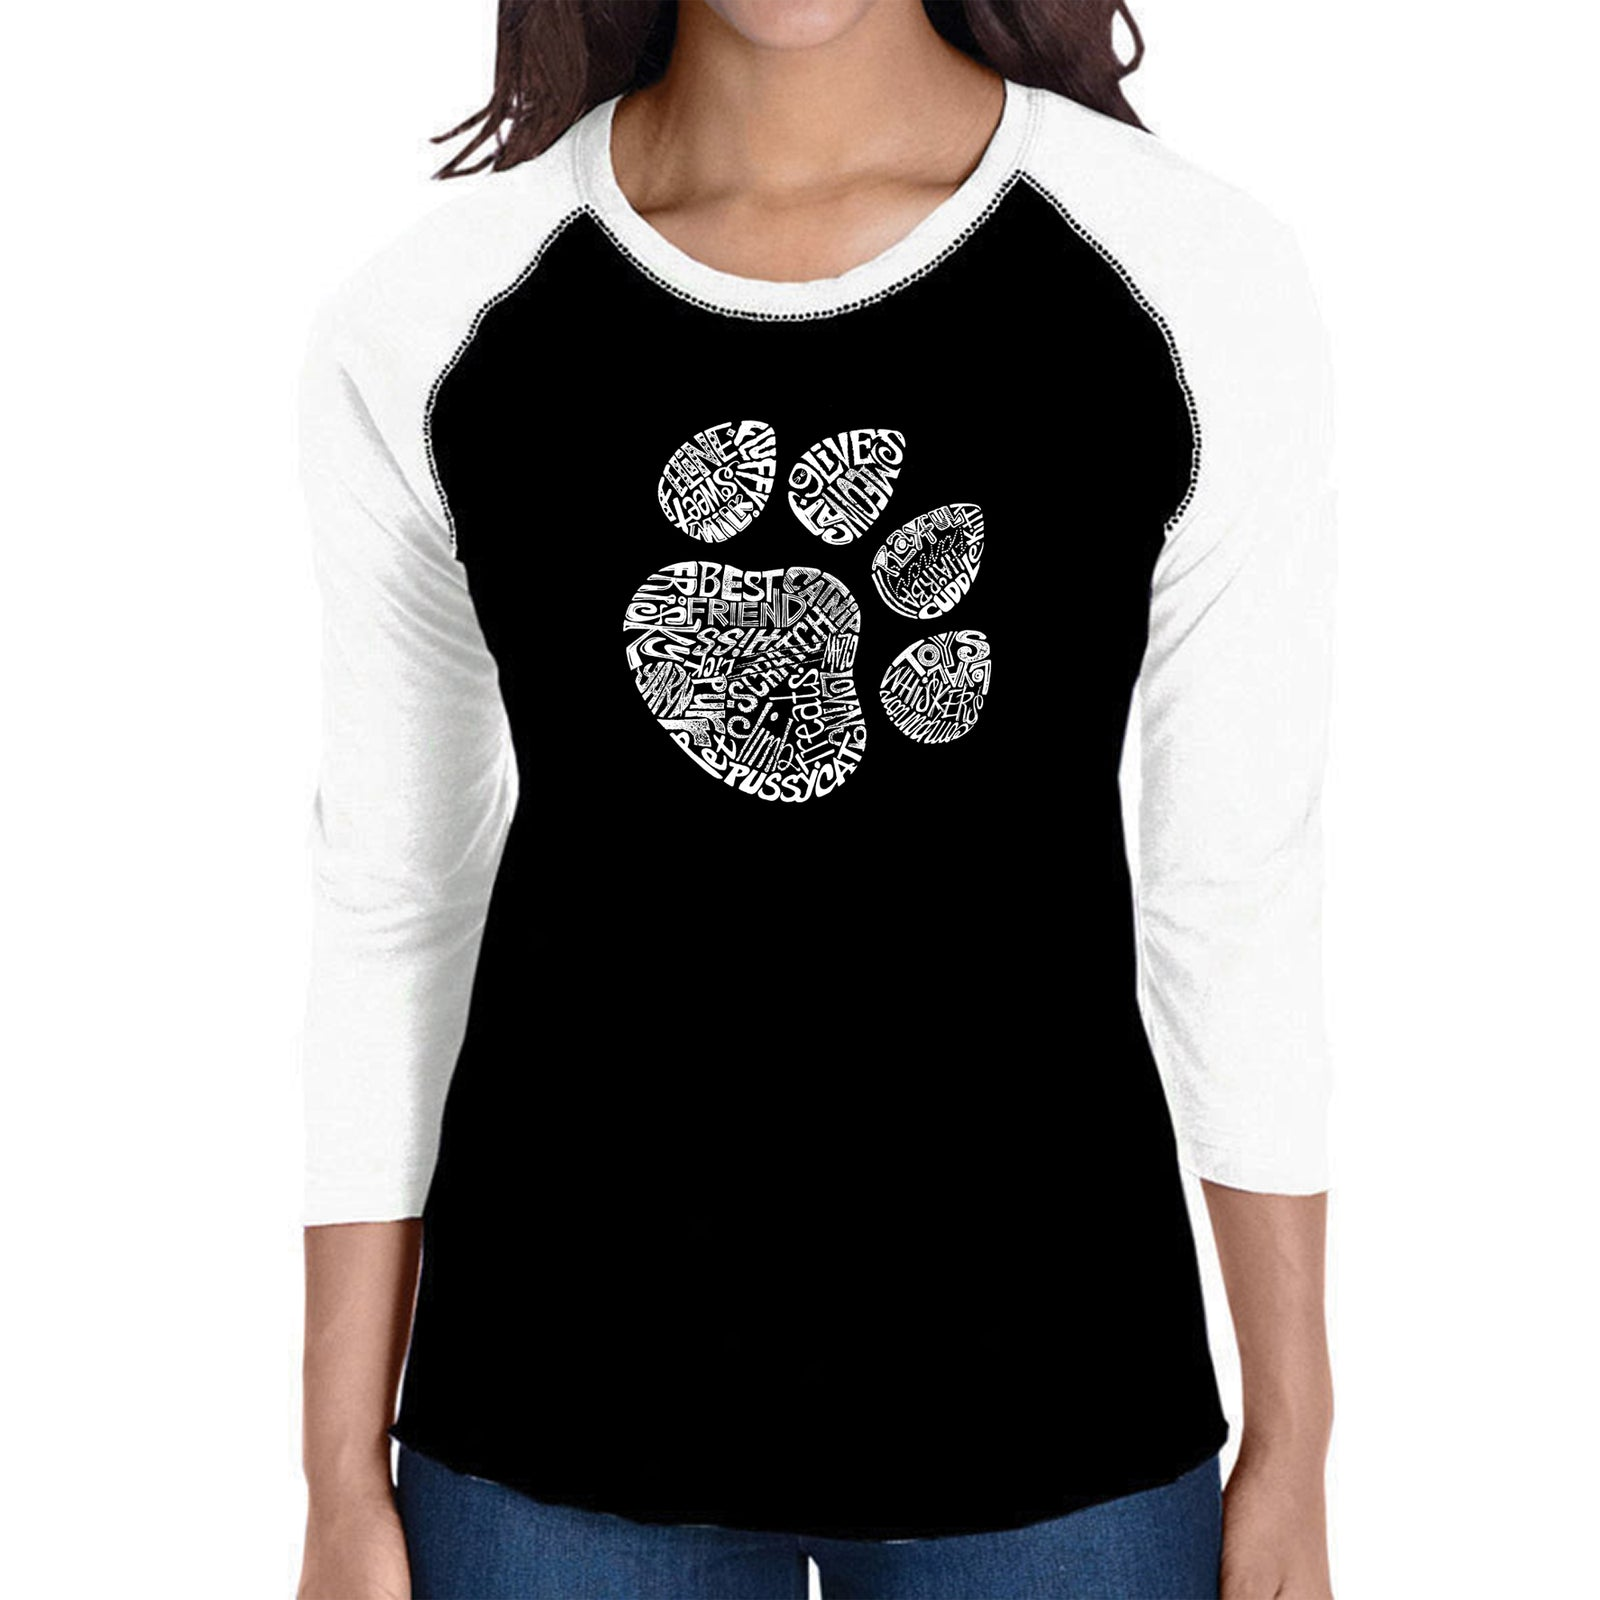 Women's Raglan Baseball Word Art T-shirt - Cat Paw